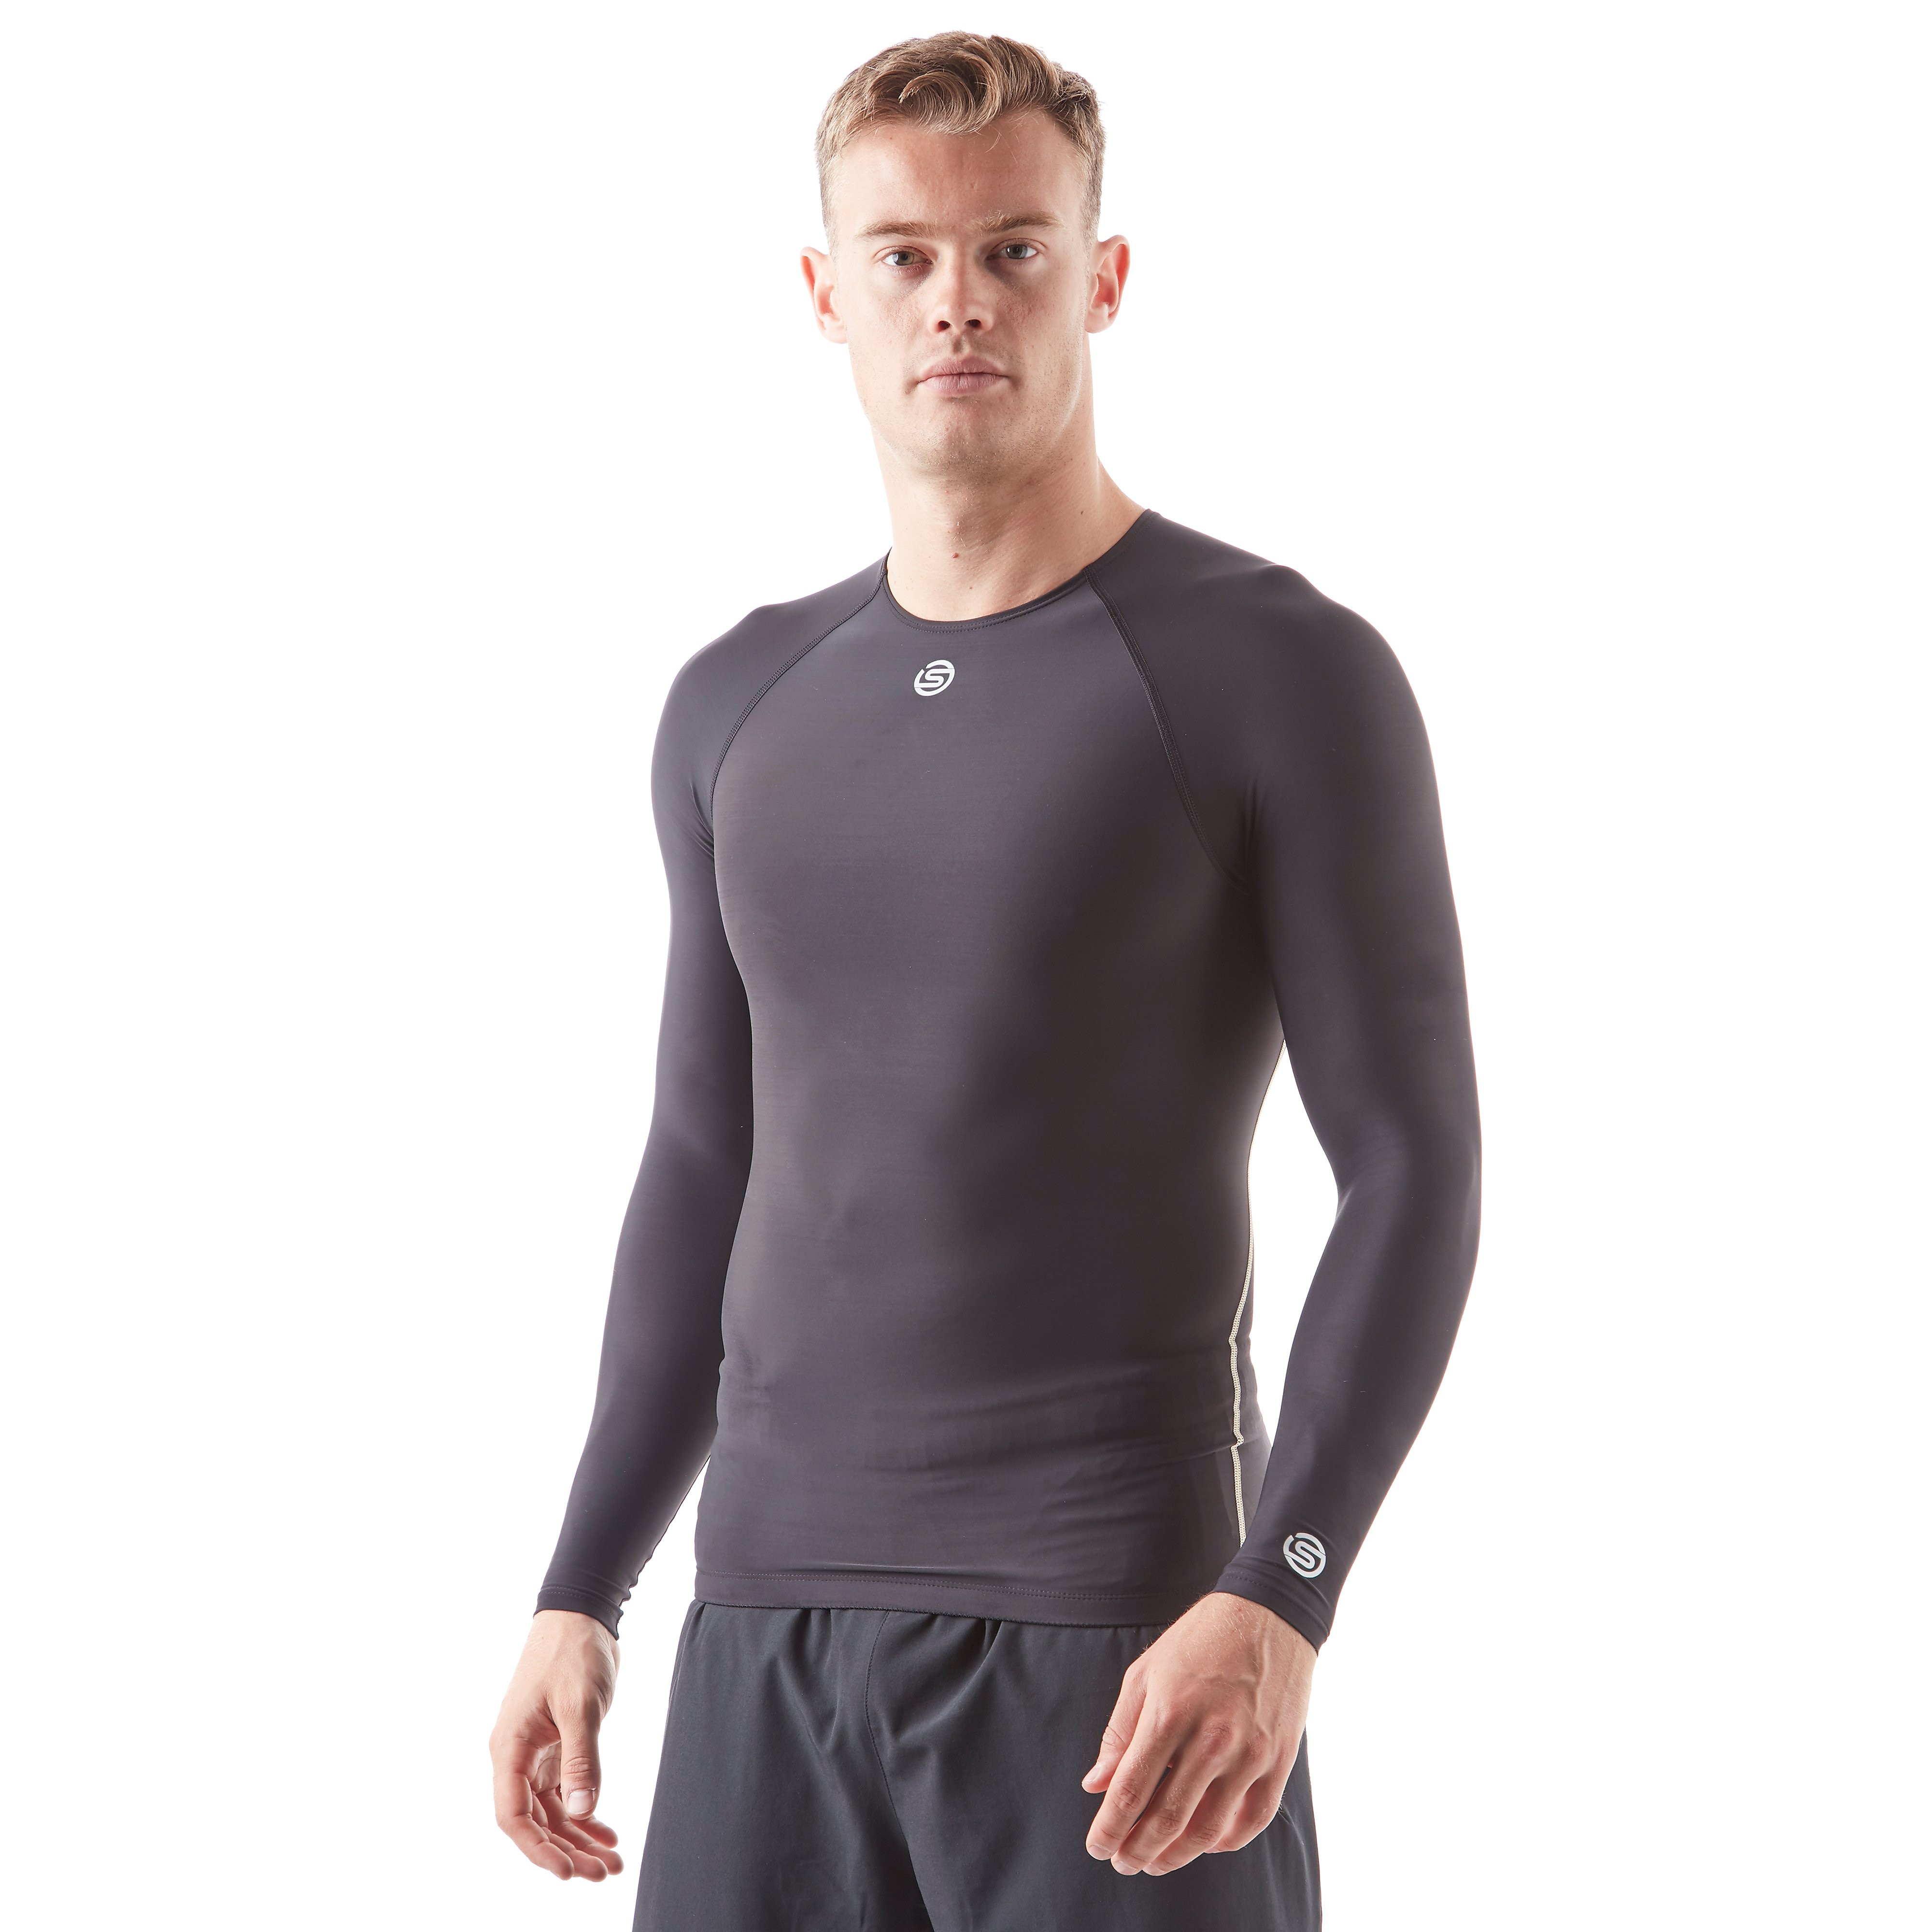 Skins DNAmic Men's Long Sleeve Top